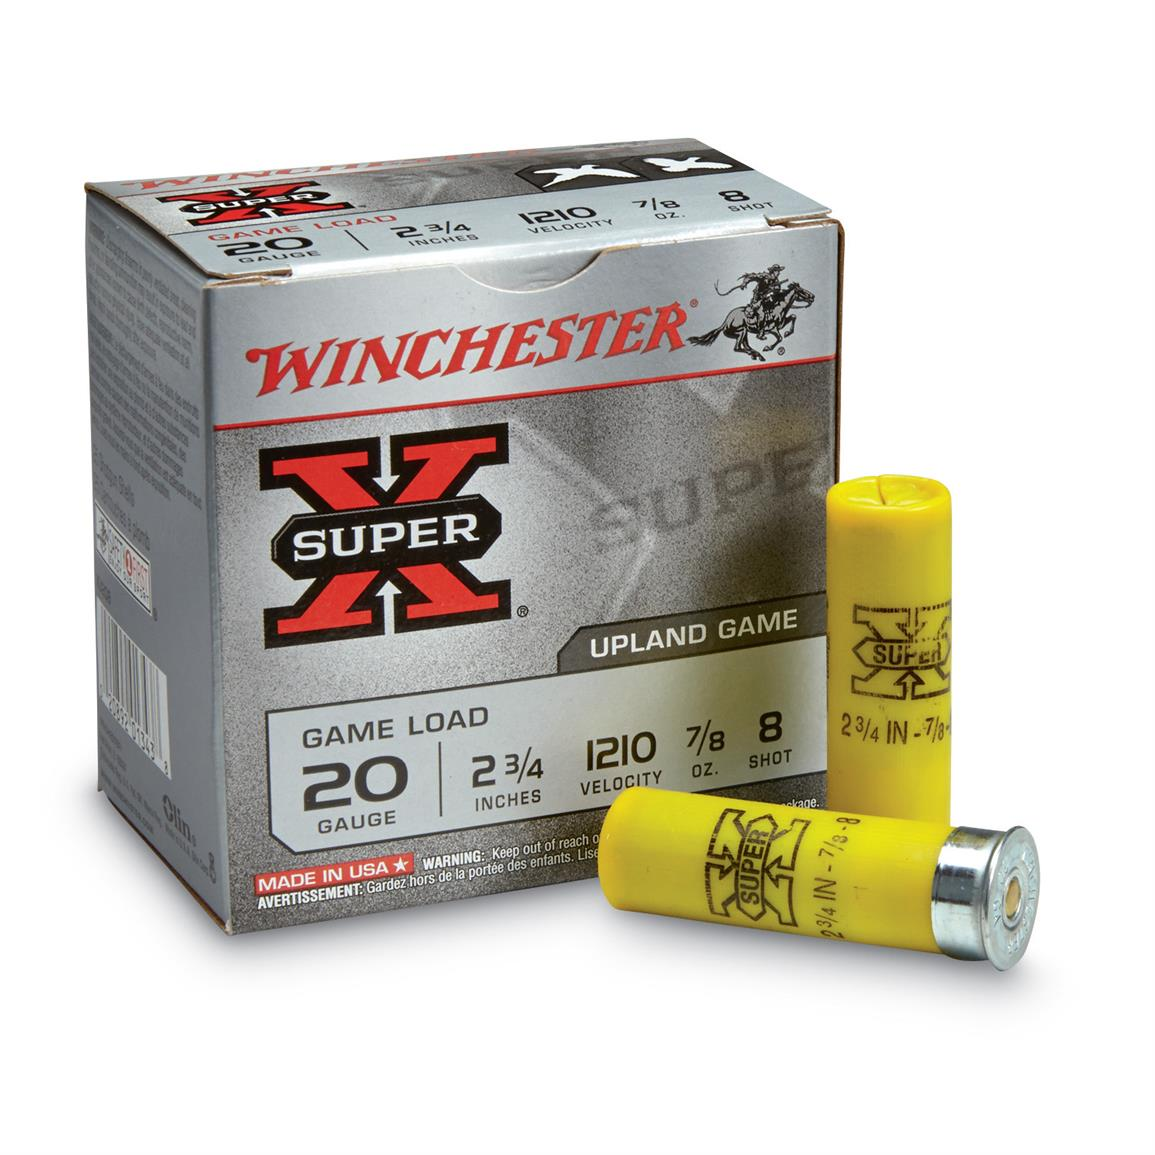 "Winchester, 2 3/4"" 20 Gauge, 7/8 oz. Super-X Game Loads, 25 Rounds"